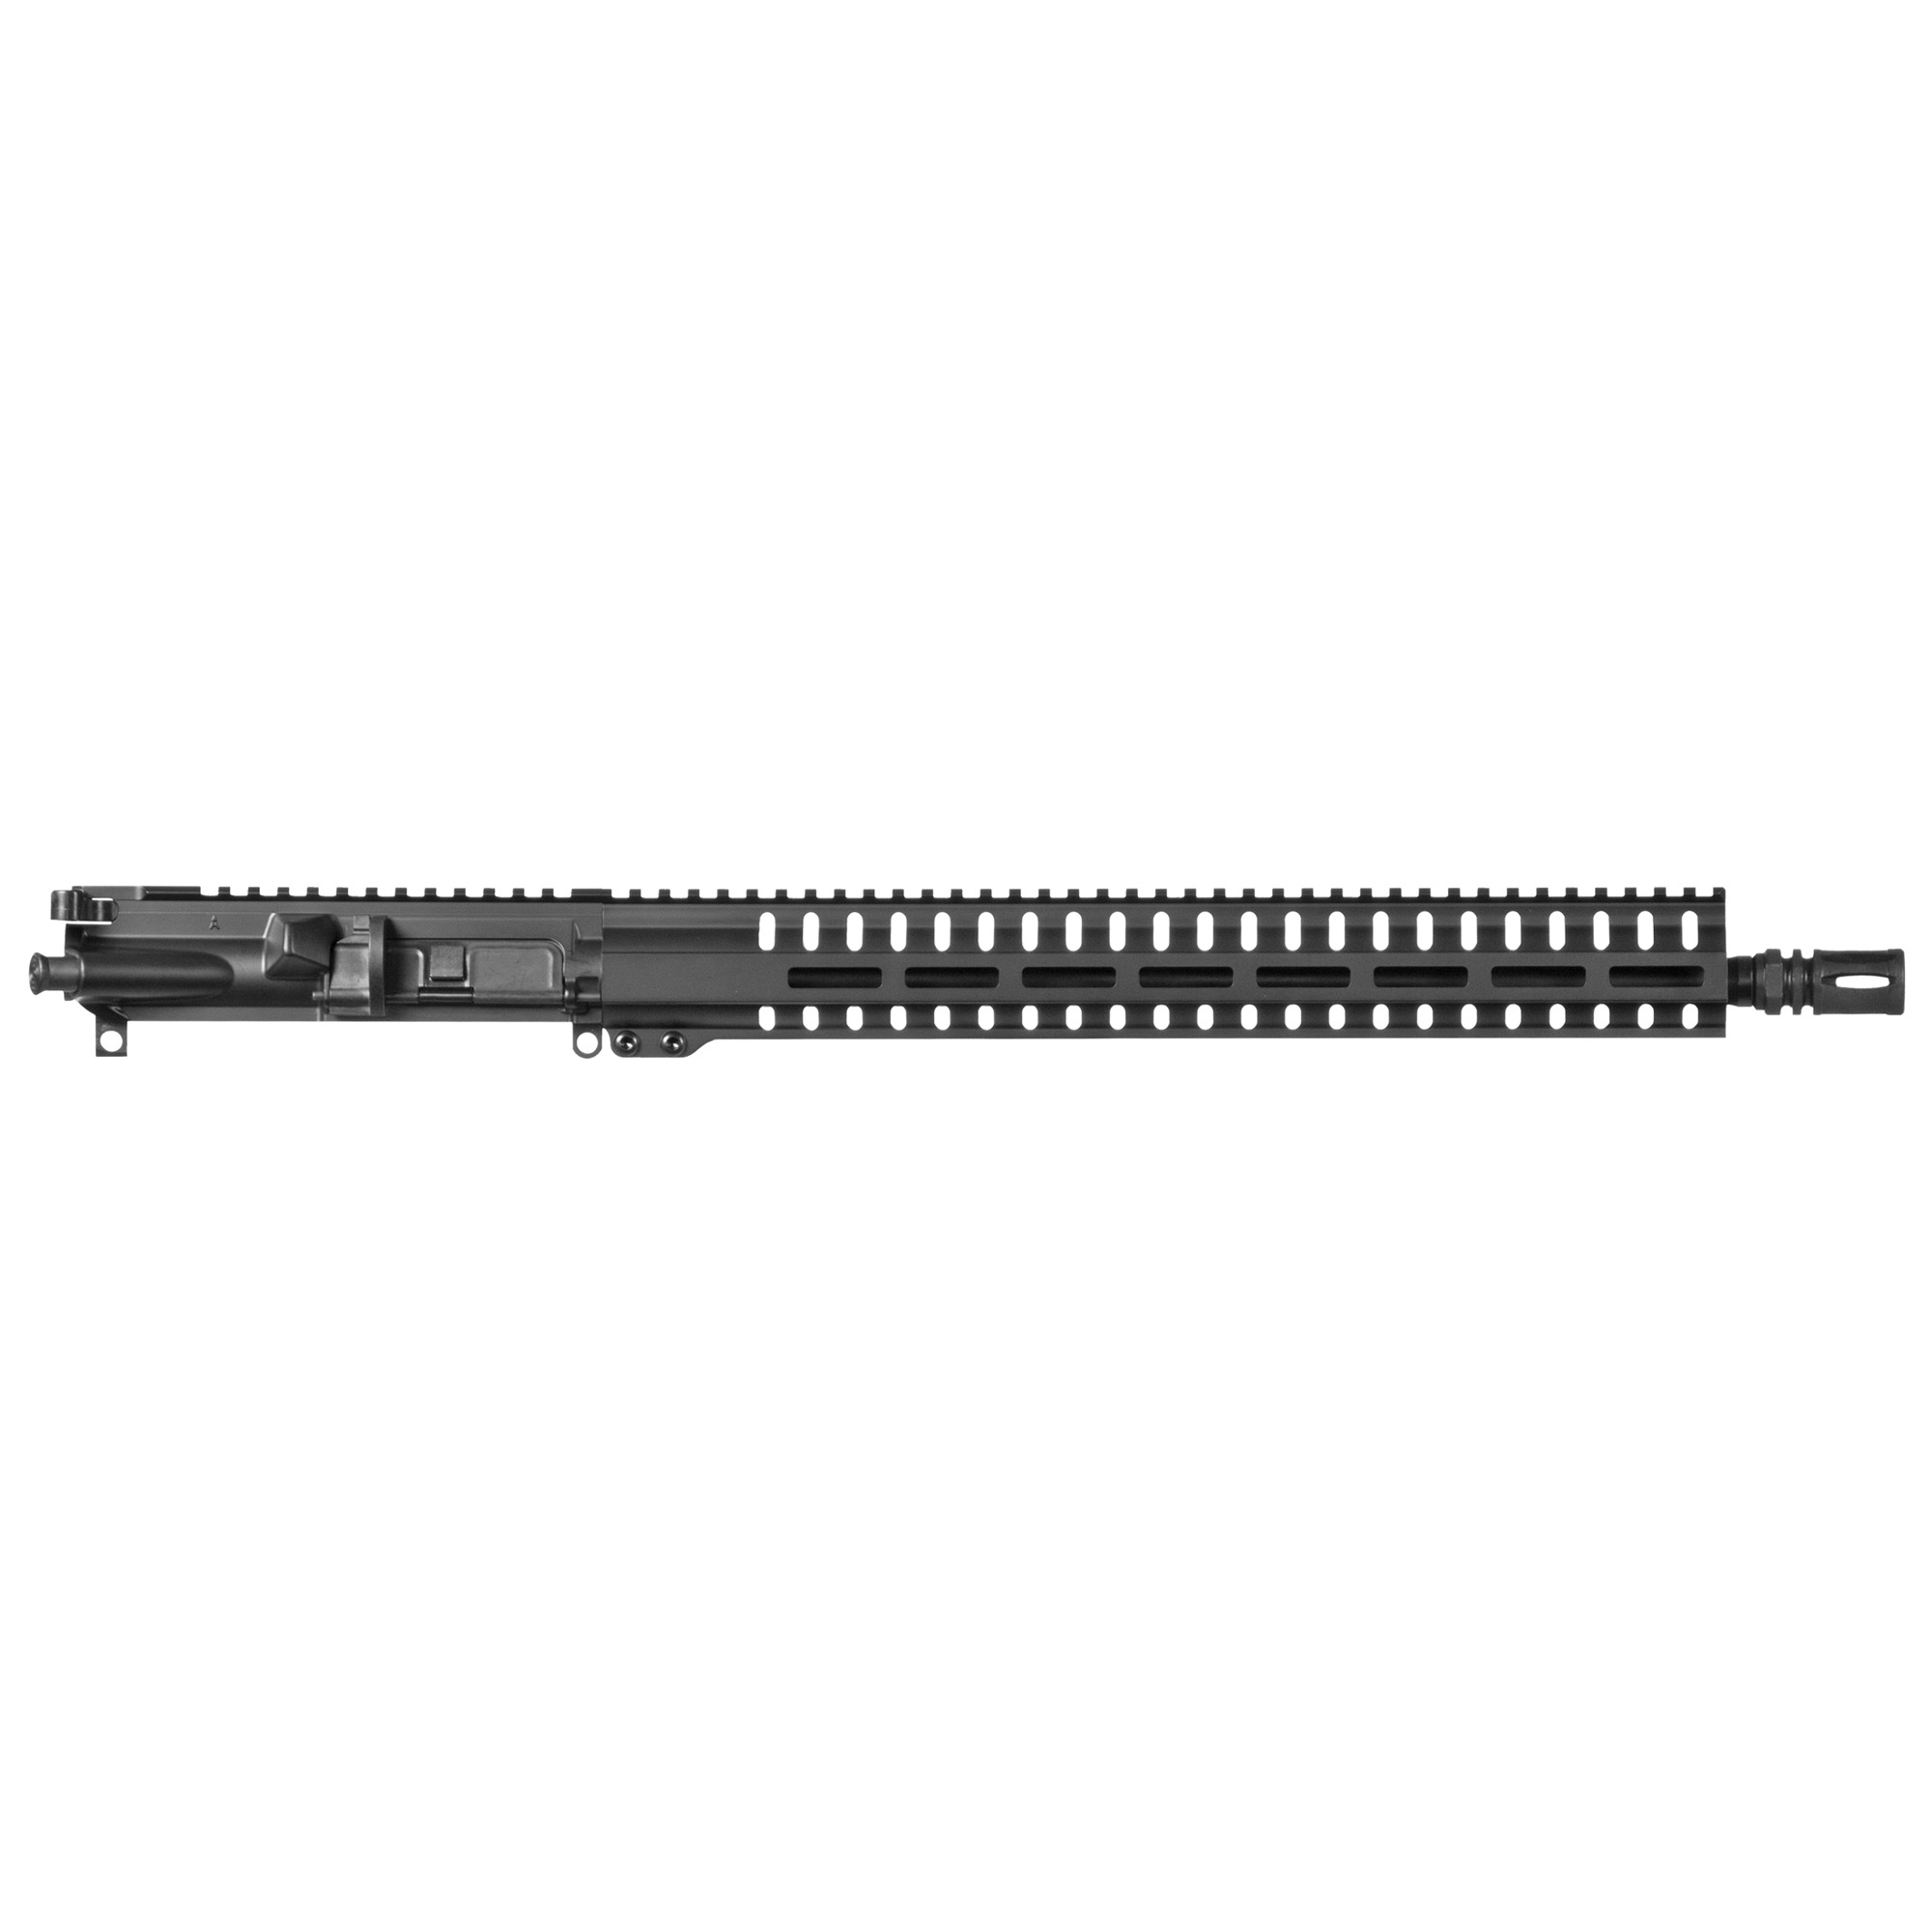 Cmmg Upper Resolute 100 22lr 17